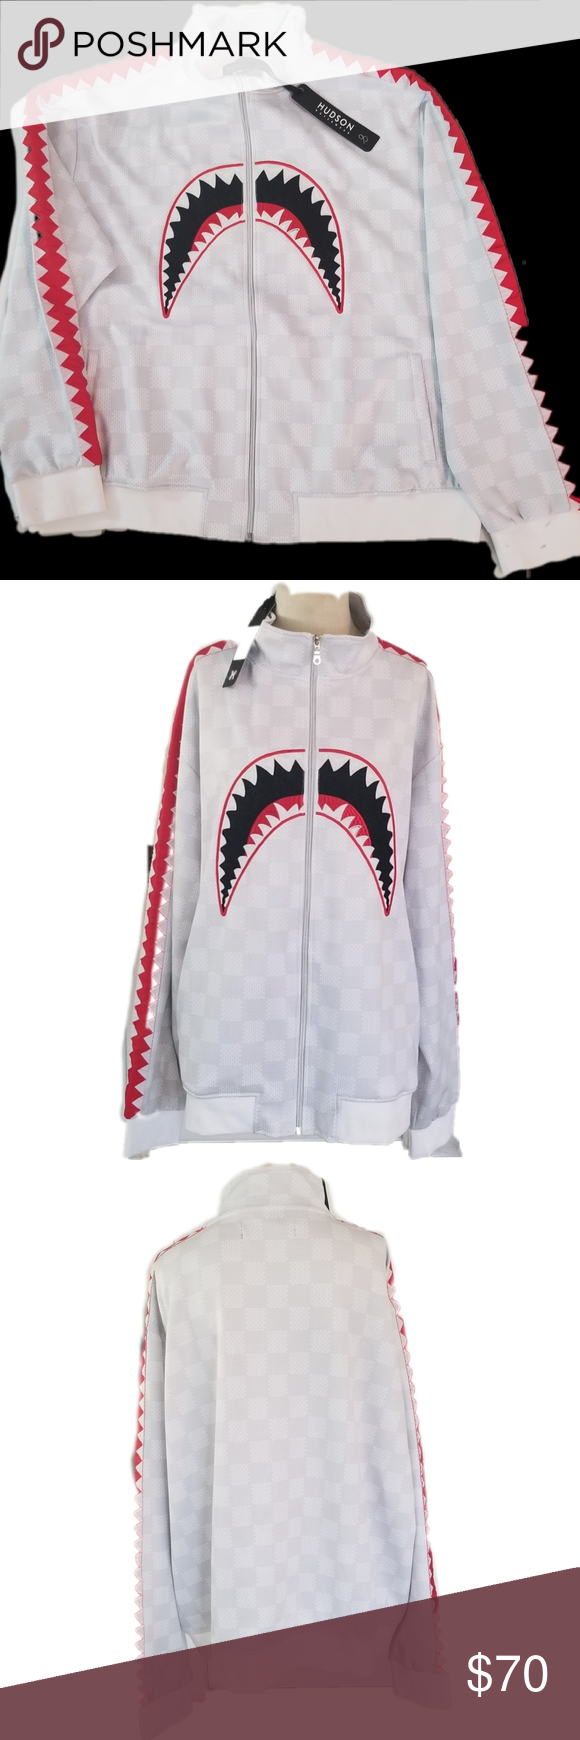 Hudson Outerwear Shark Mouth Size 4xl Hudson Outerwear Shark Mouth Size 4xl White With Red Trim Measurements Are Approx Fashion Clothes Design Fashion Trends [ 1740 x 580 Pixel ]